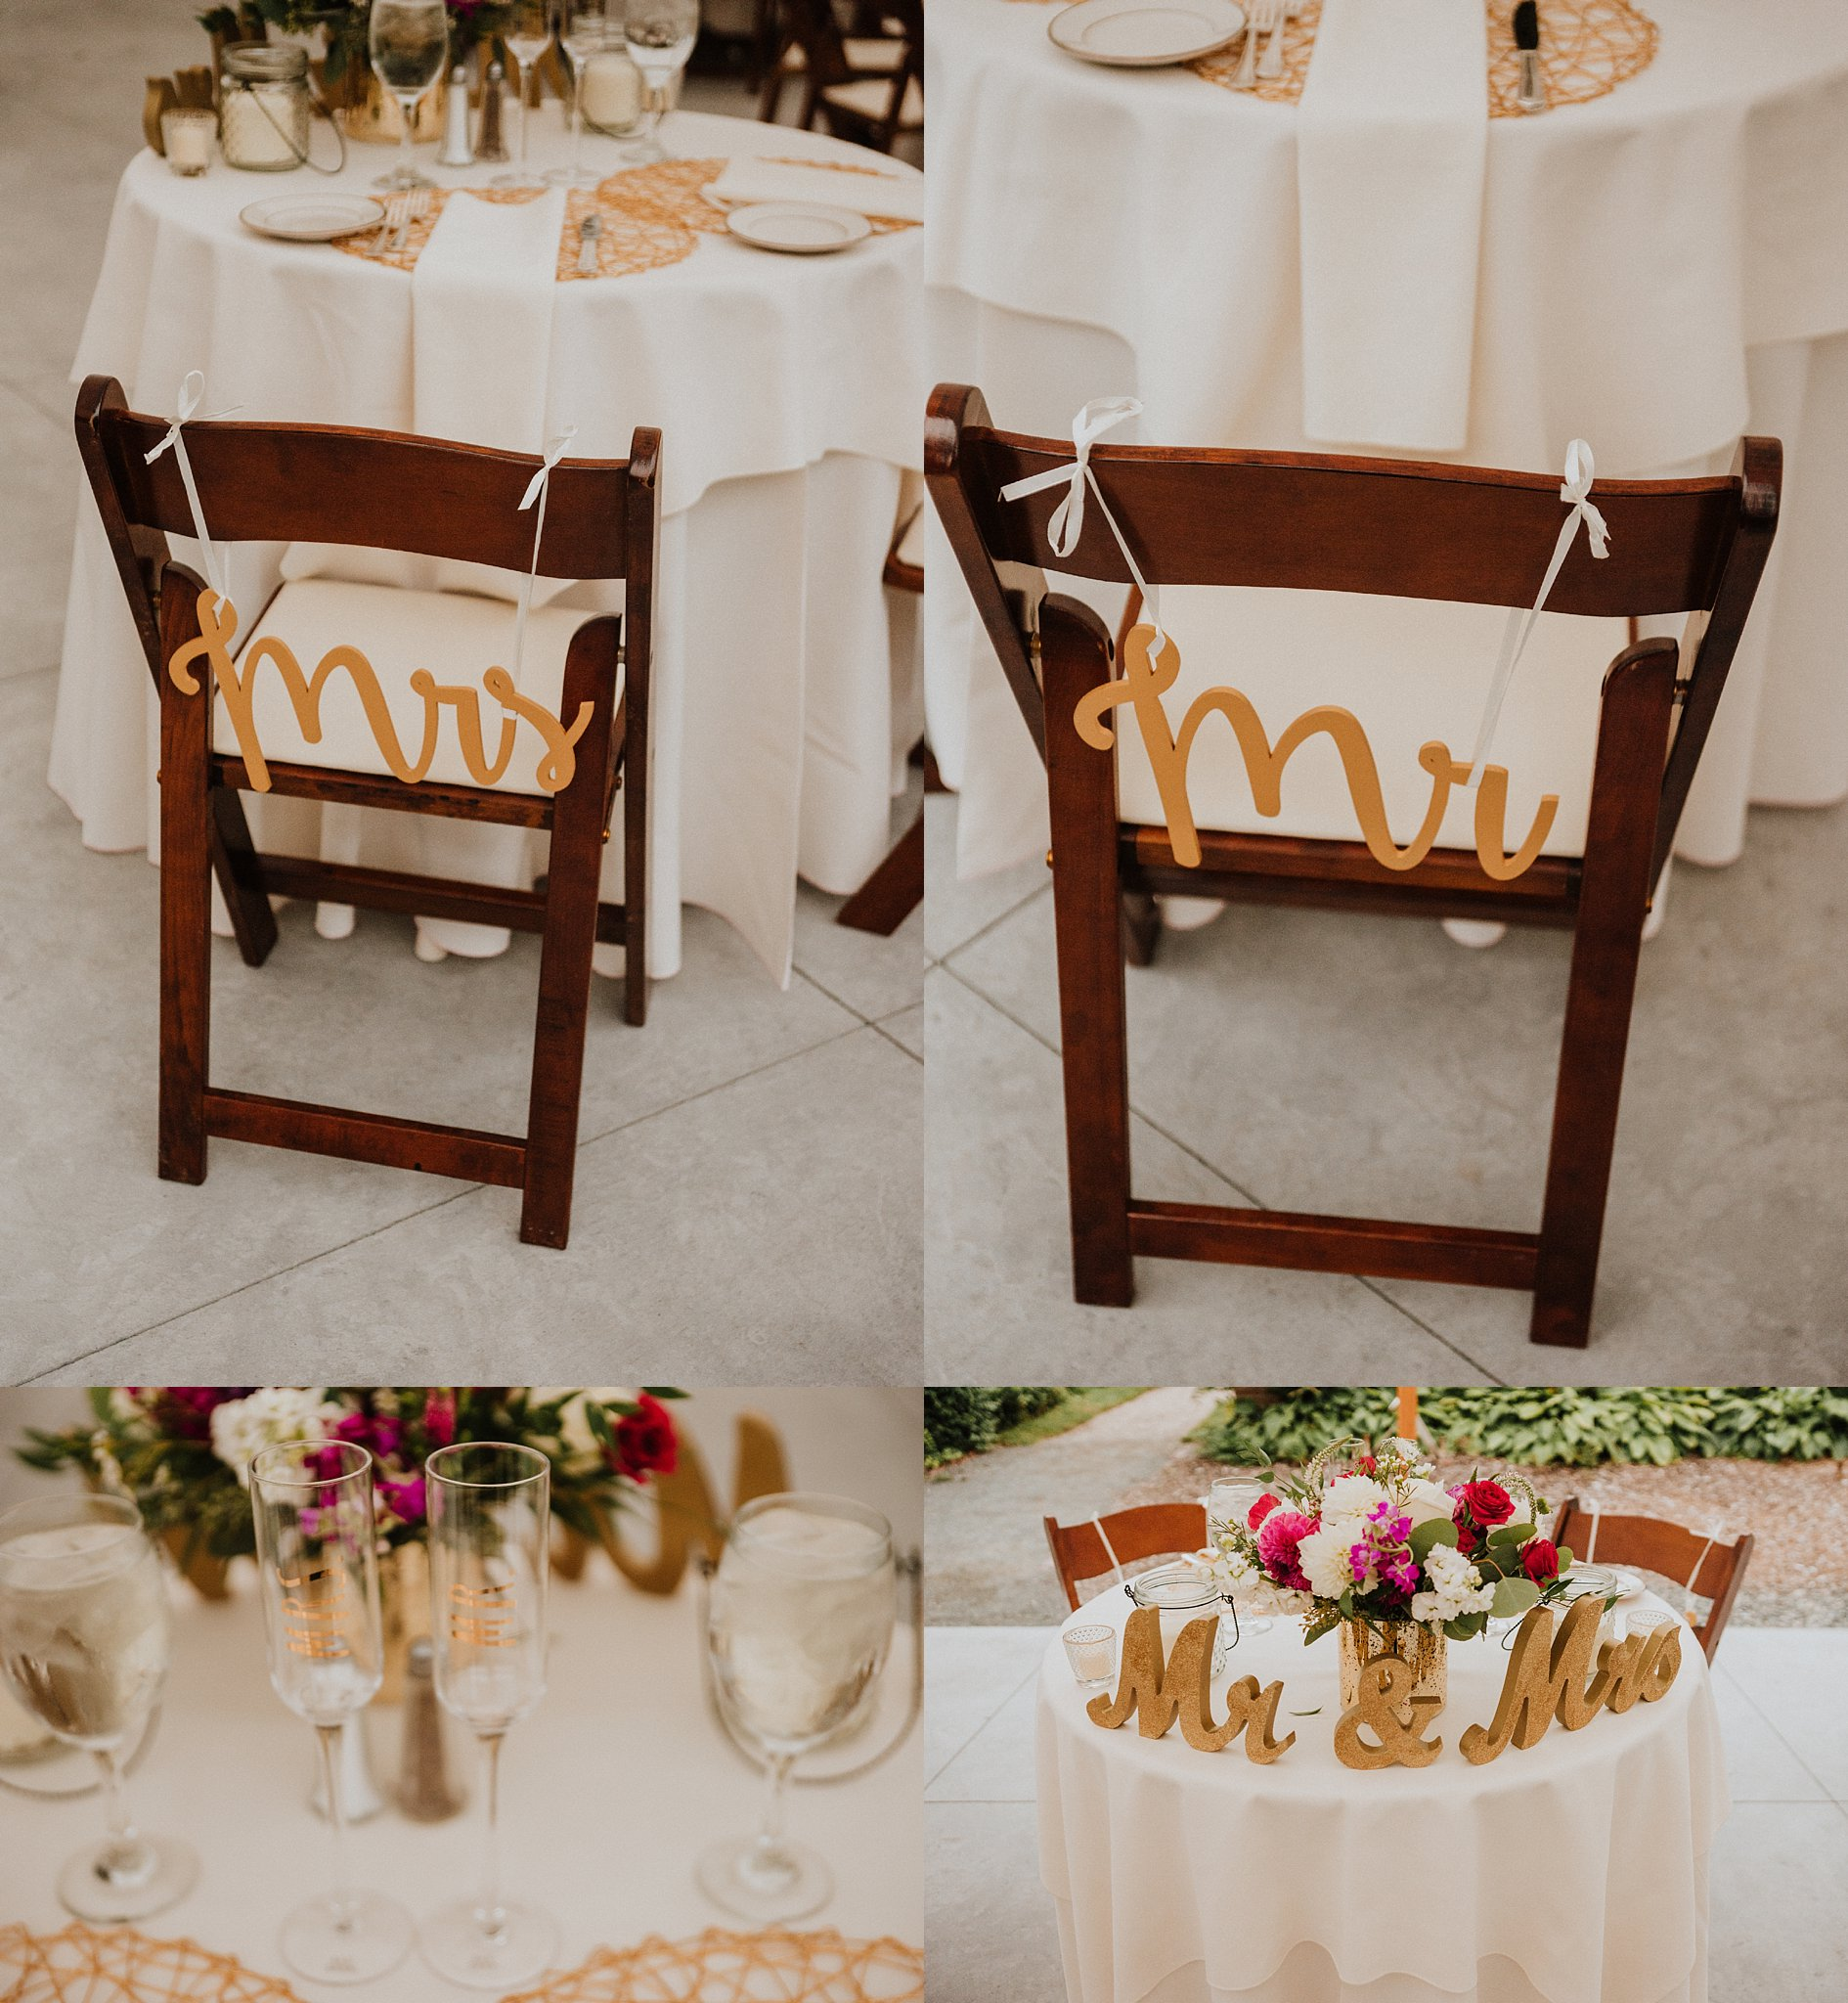 Boston Wedding Photographer | New England Wedding Photographer | Glen Magna Farms | New England Wedding | Shelby Chari Photography